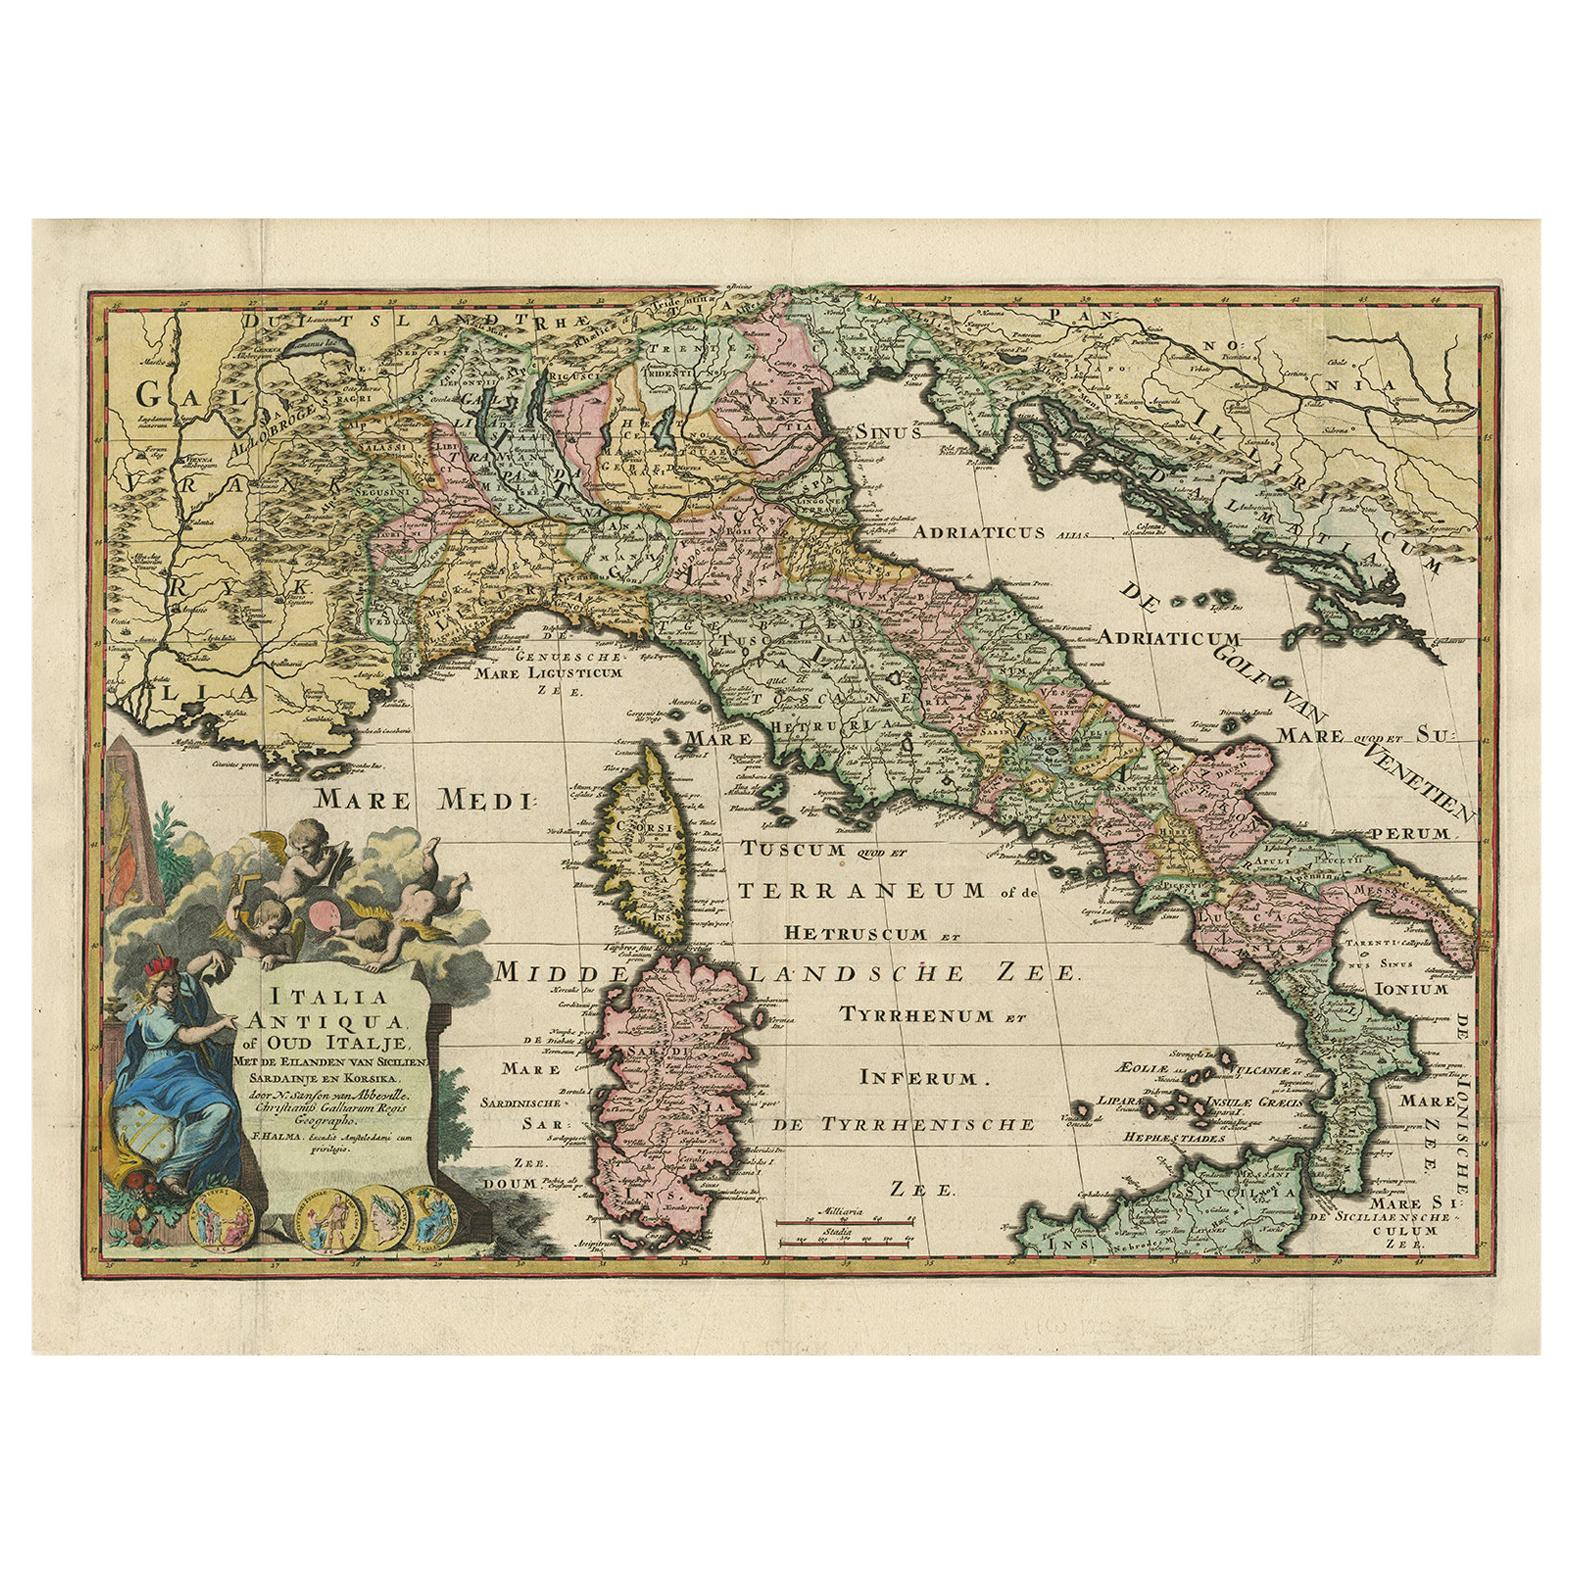 Antique Map of Ancient Italy and the Islands Corsica, Sicily and Sardinia